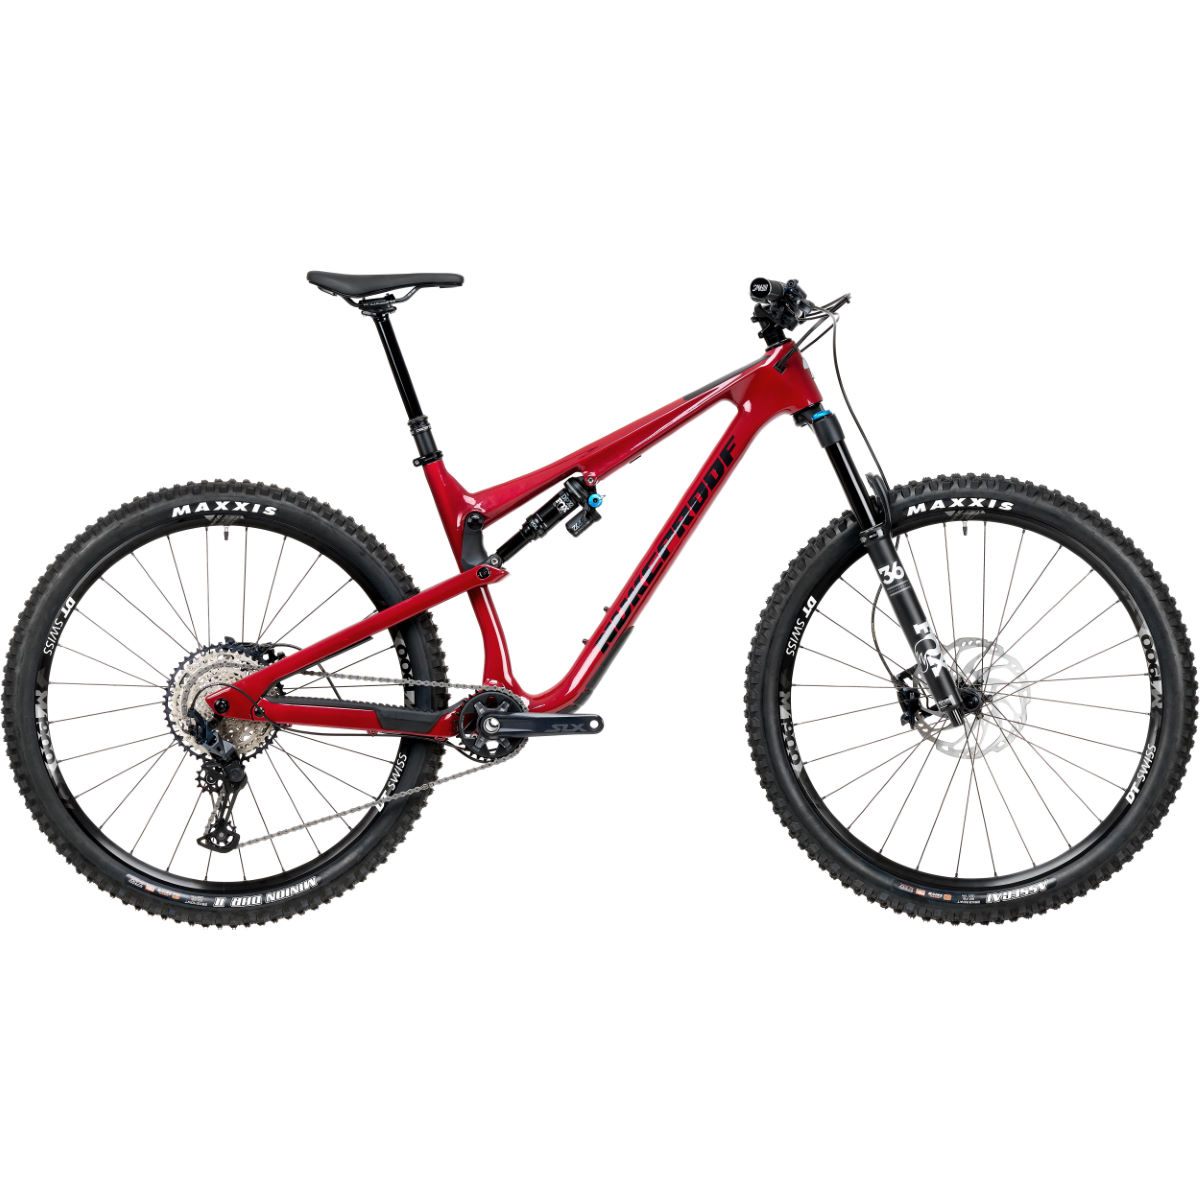 Nukeproof Nukeproof Reactor 290 Elite Carbon Bike (SLX - 2020)   Full Suspension Mountain Bikes